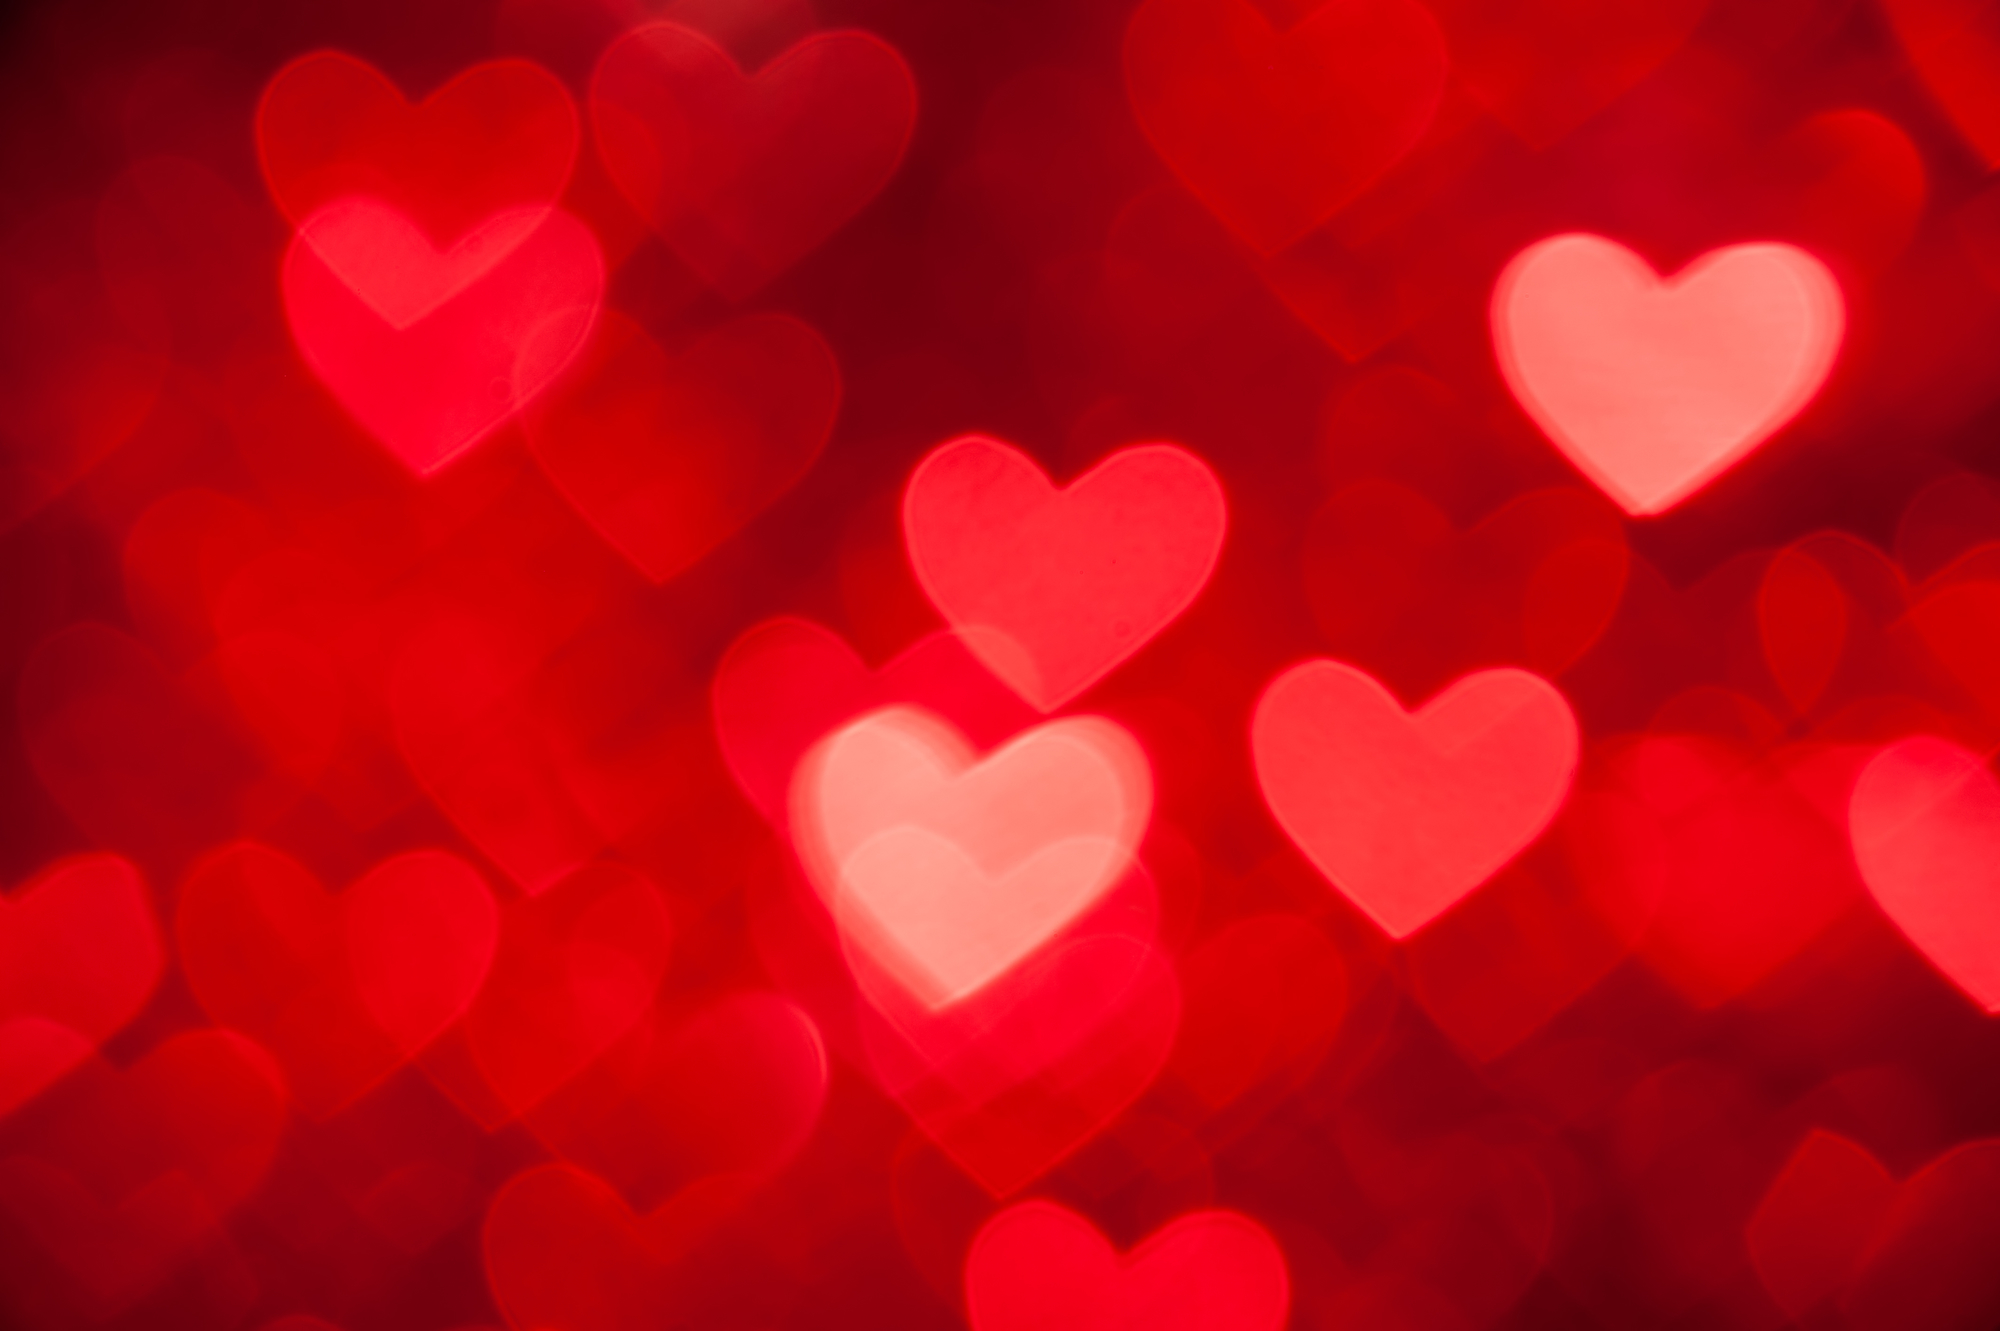 red hearts as background